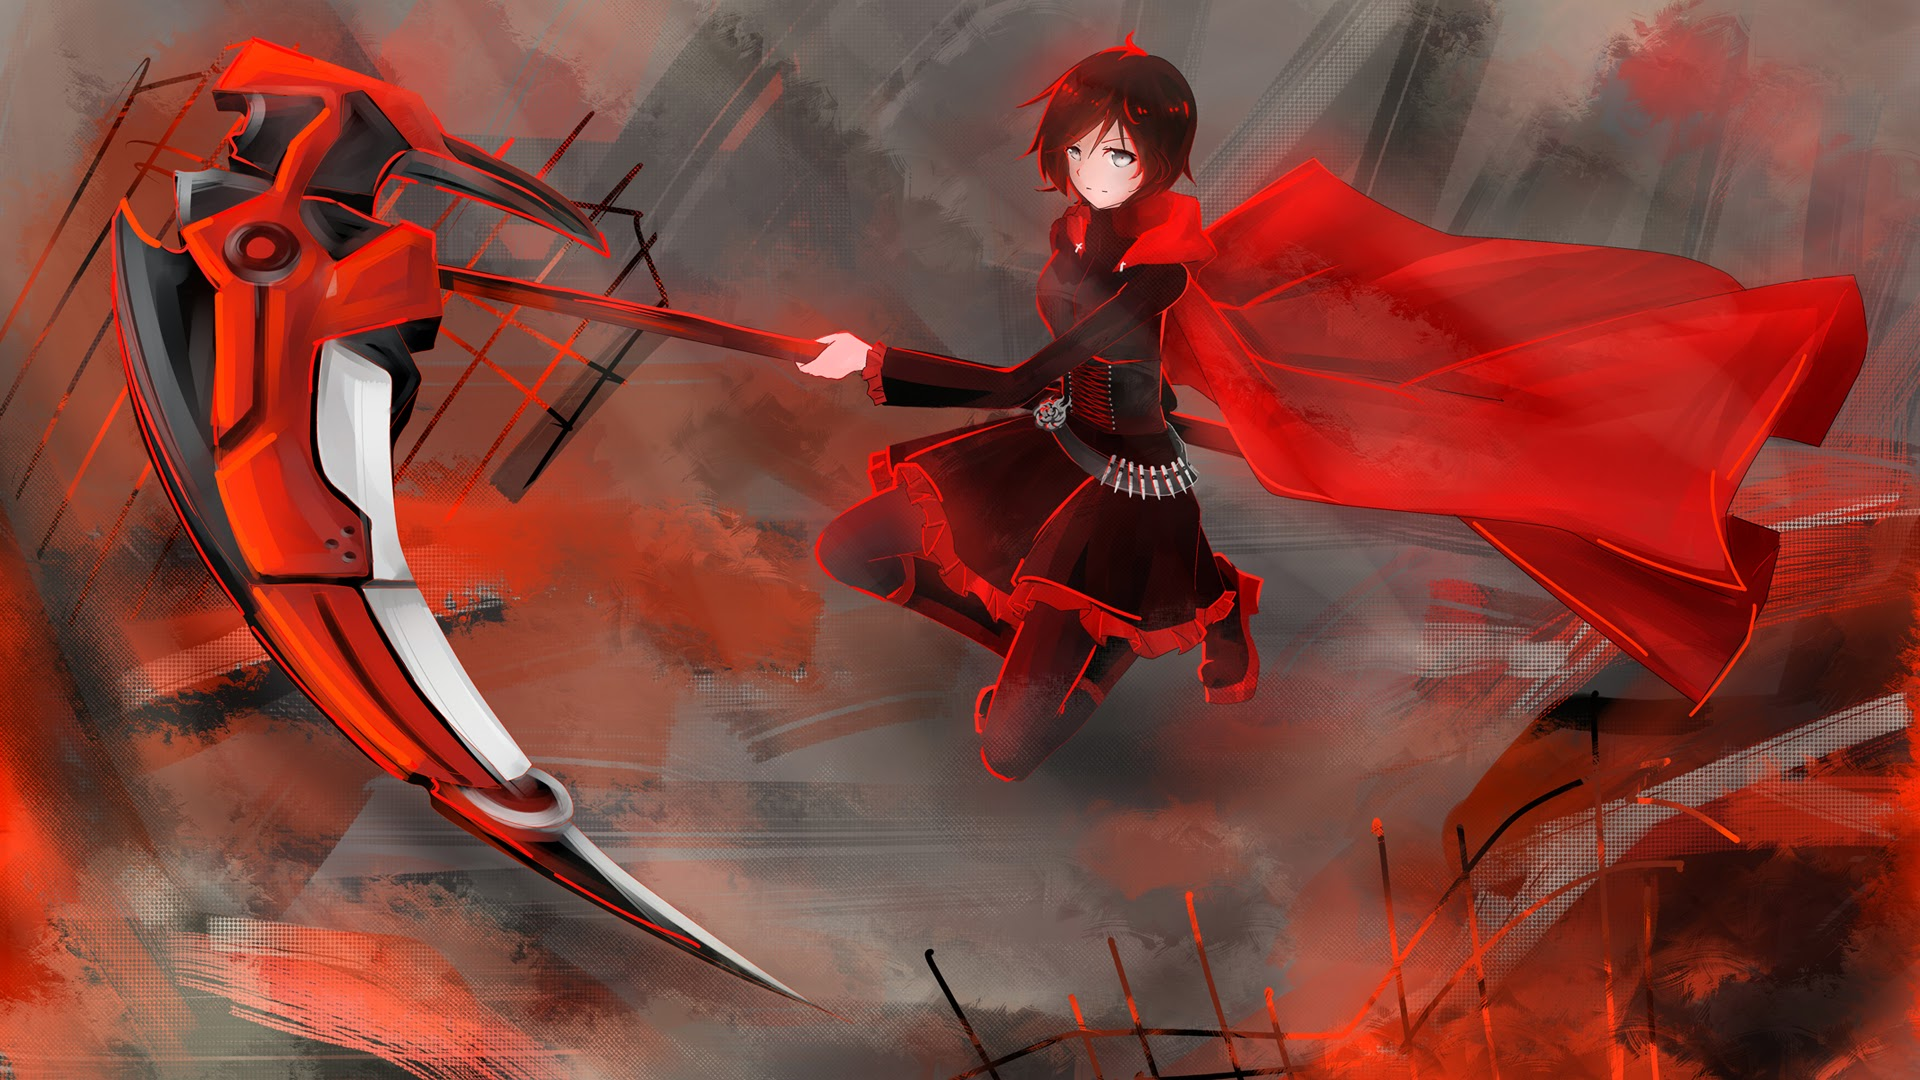 ruby rose rwby high caliber sniper scythe weapon cape girl animation 1920x1080